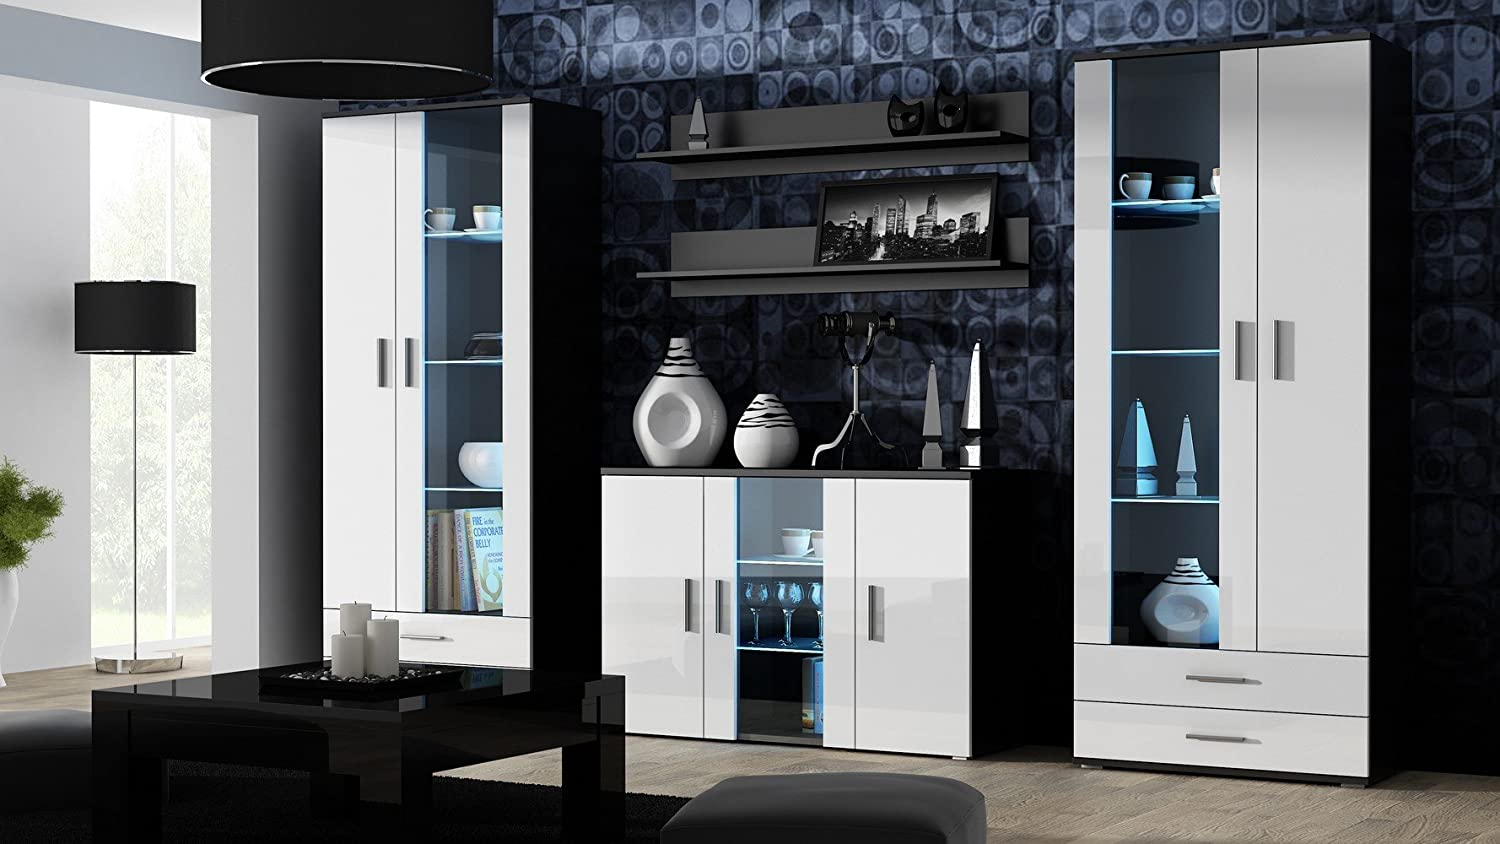 wohnwand soho anbauwand wohnzimmer m bel hochglanz vitrine kommode tv schrank korpus schwarz. Black Bedroom Furniture Sets. Home Design Ideas